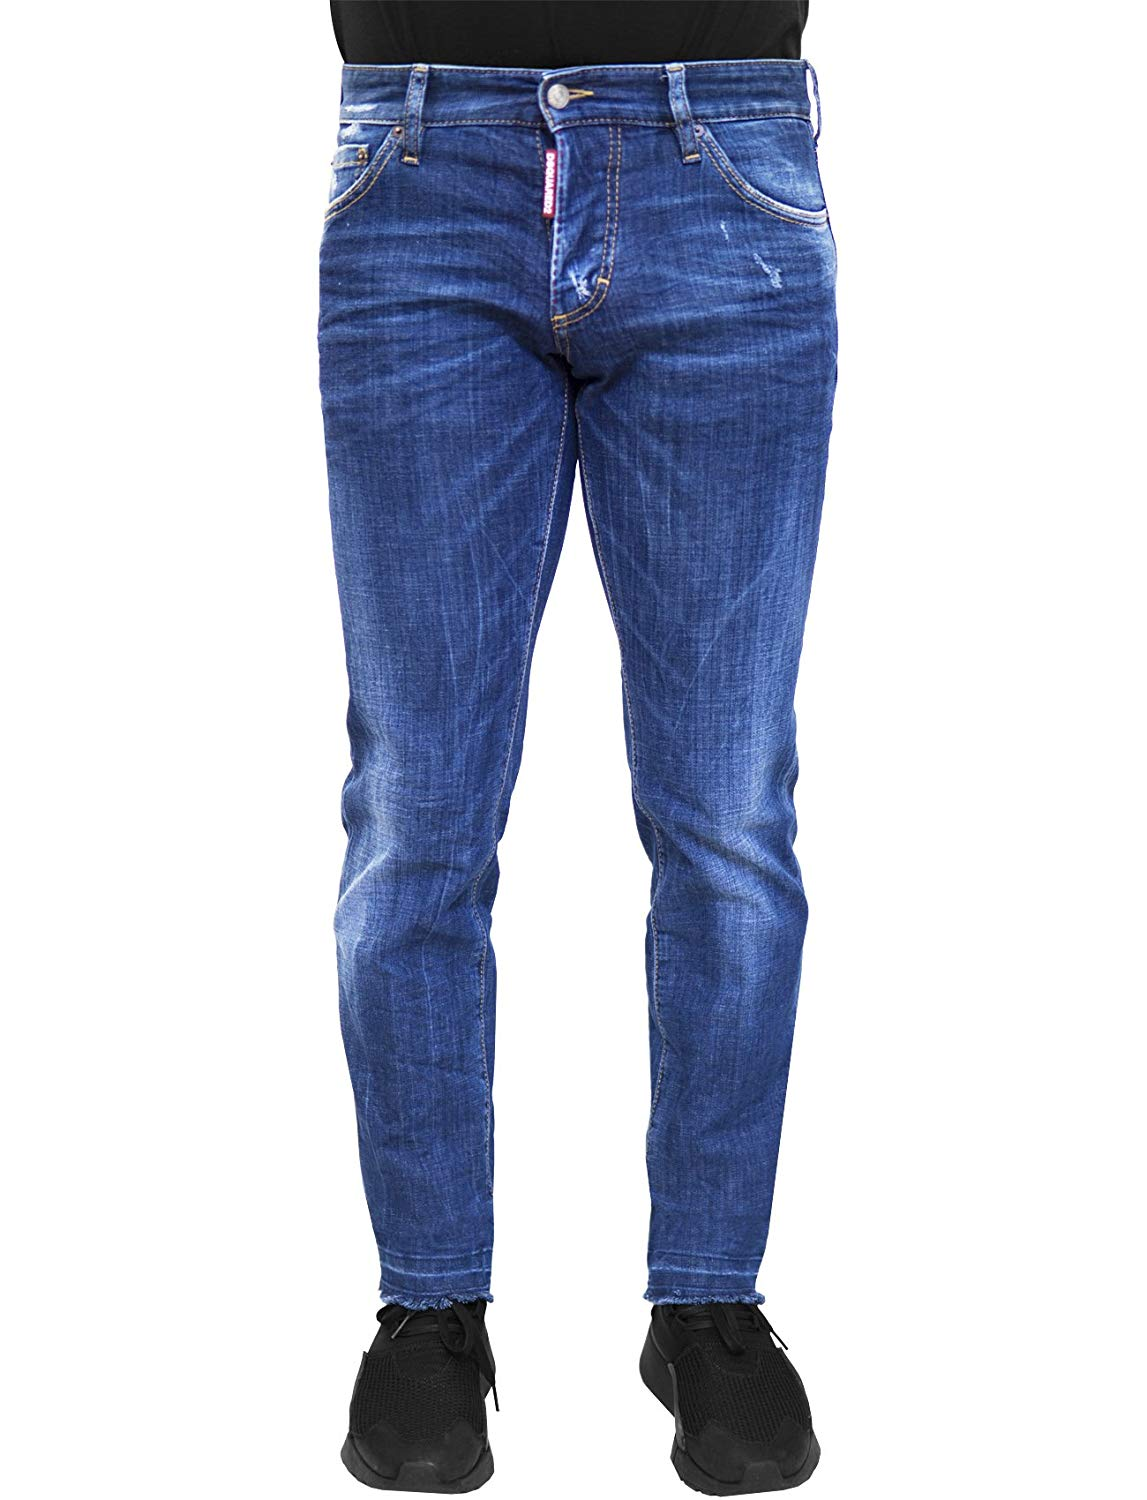 dfddfa6428a Cheap Dsquared Jeans, find Dsquared Jeans deals on line at Alibaba.com